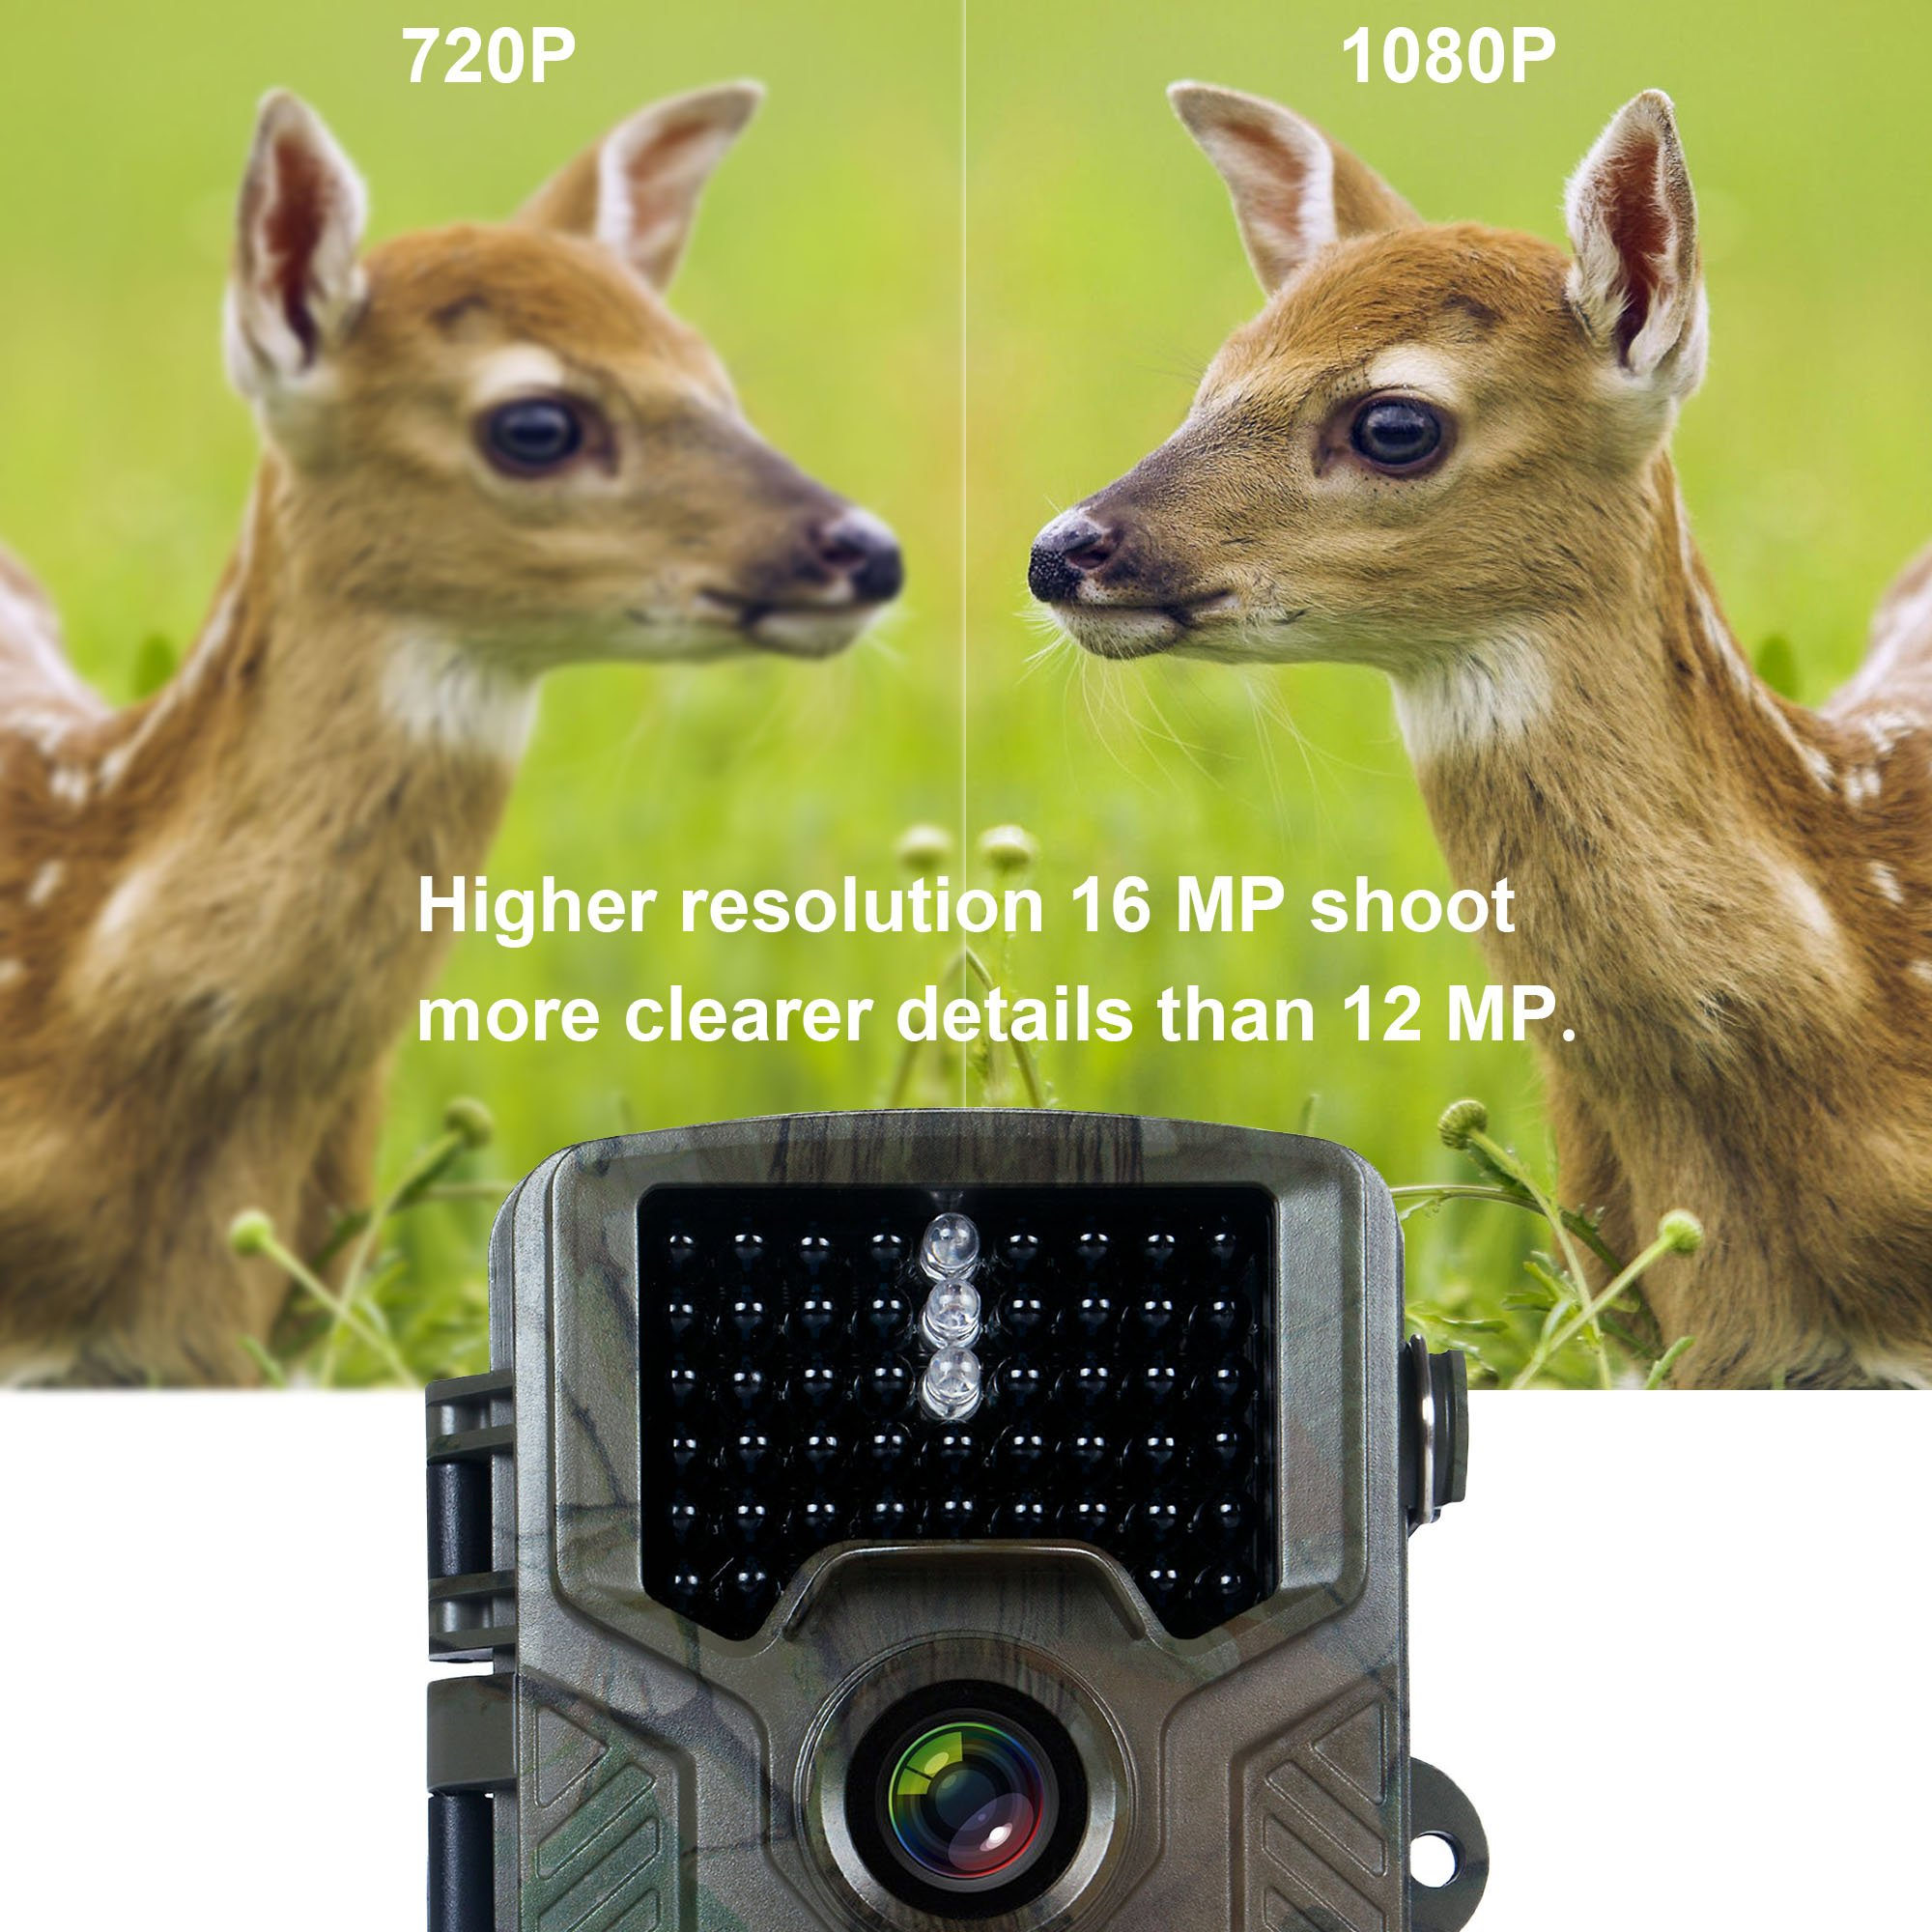 FLAGPOWER Hunting Trail Camera, 16MP 1080P 0.2s Trigger Time Wildlife Game Camera with 2.4'' LCD 850nm Upgrading IR LEDs Night Vision up to 75ft/2.3m IP56 Spray Water Protected Design by FLAGPOWER (Image #3)